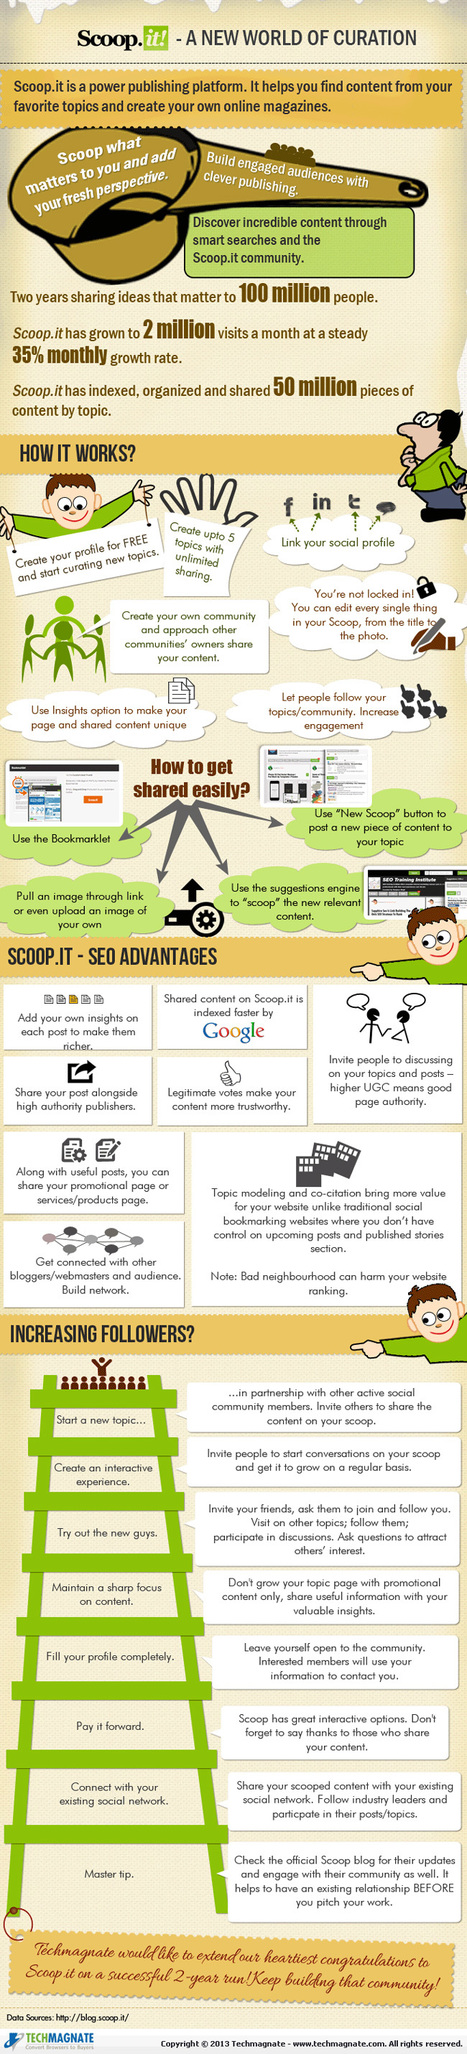 Scoop.It for SEO – A New World of Curation [Infographic] | Wiki_Universe | Scoop.it